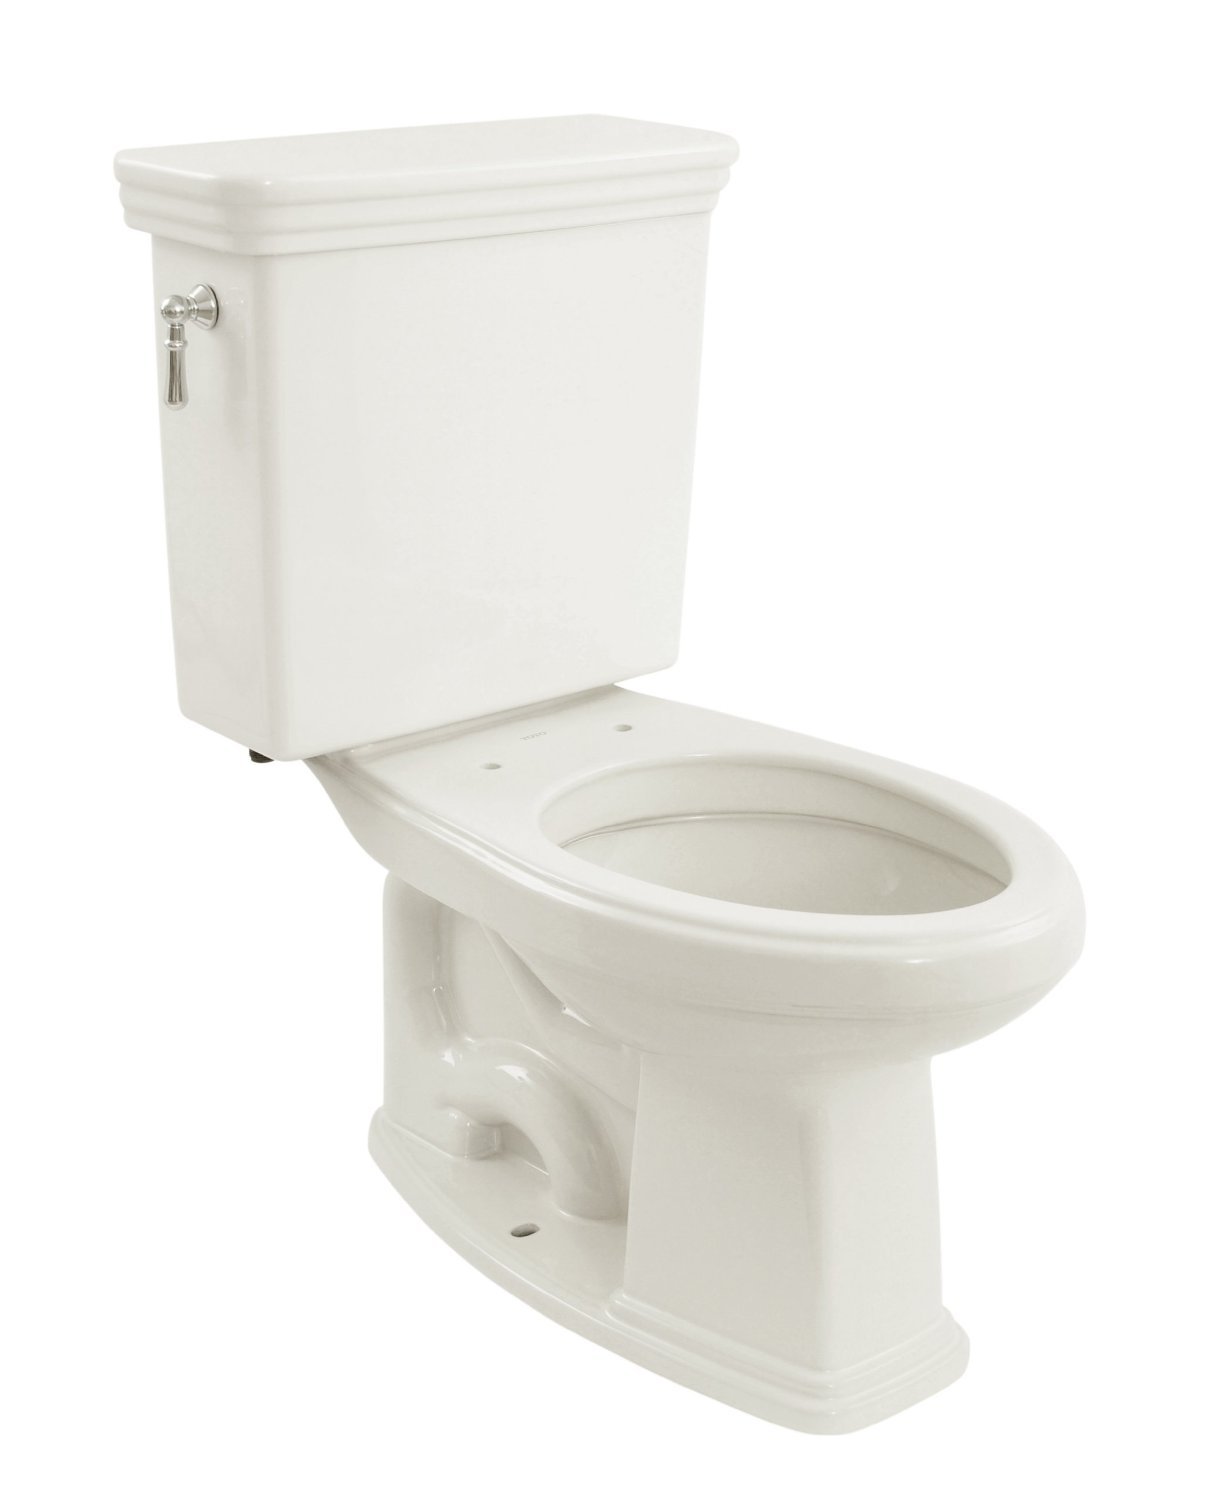 TOTO CST424EFG#01 Promenade E-Max Elongated Bowl and Tank Universal Height, Cotton White